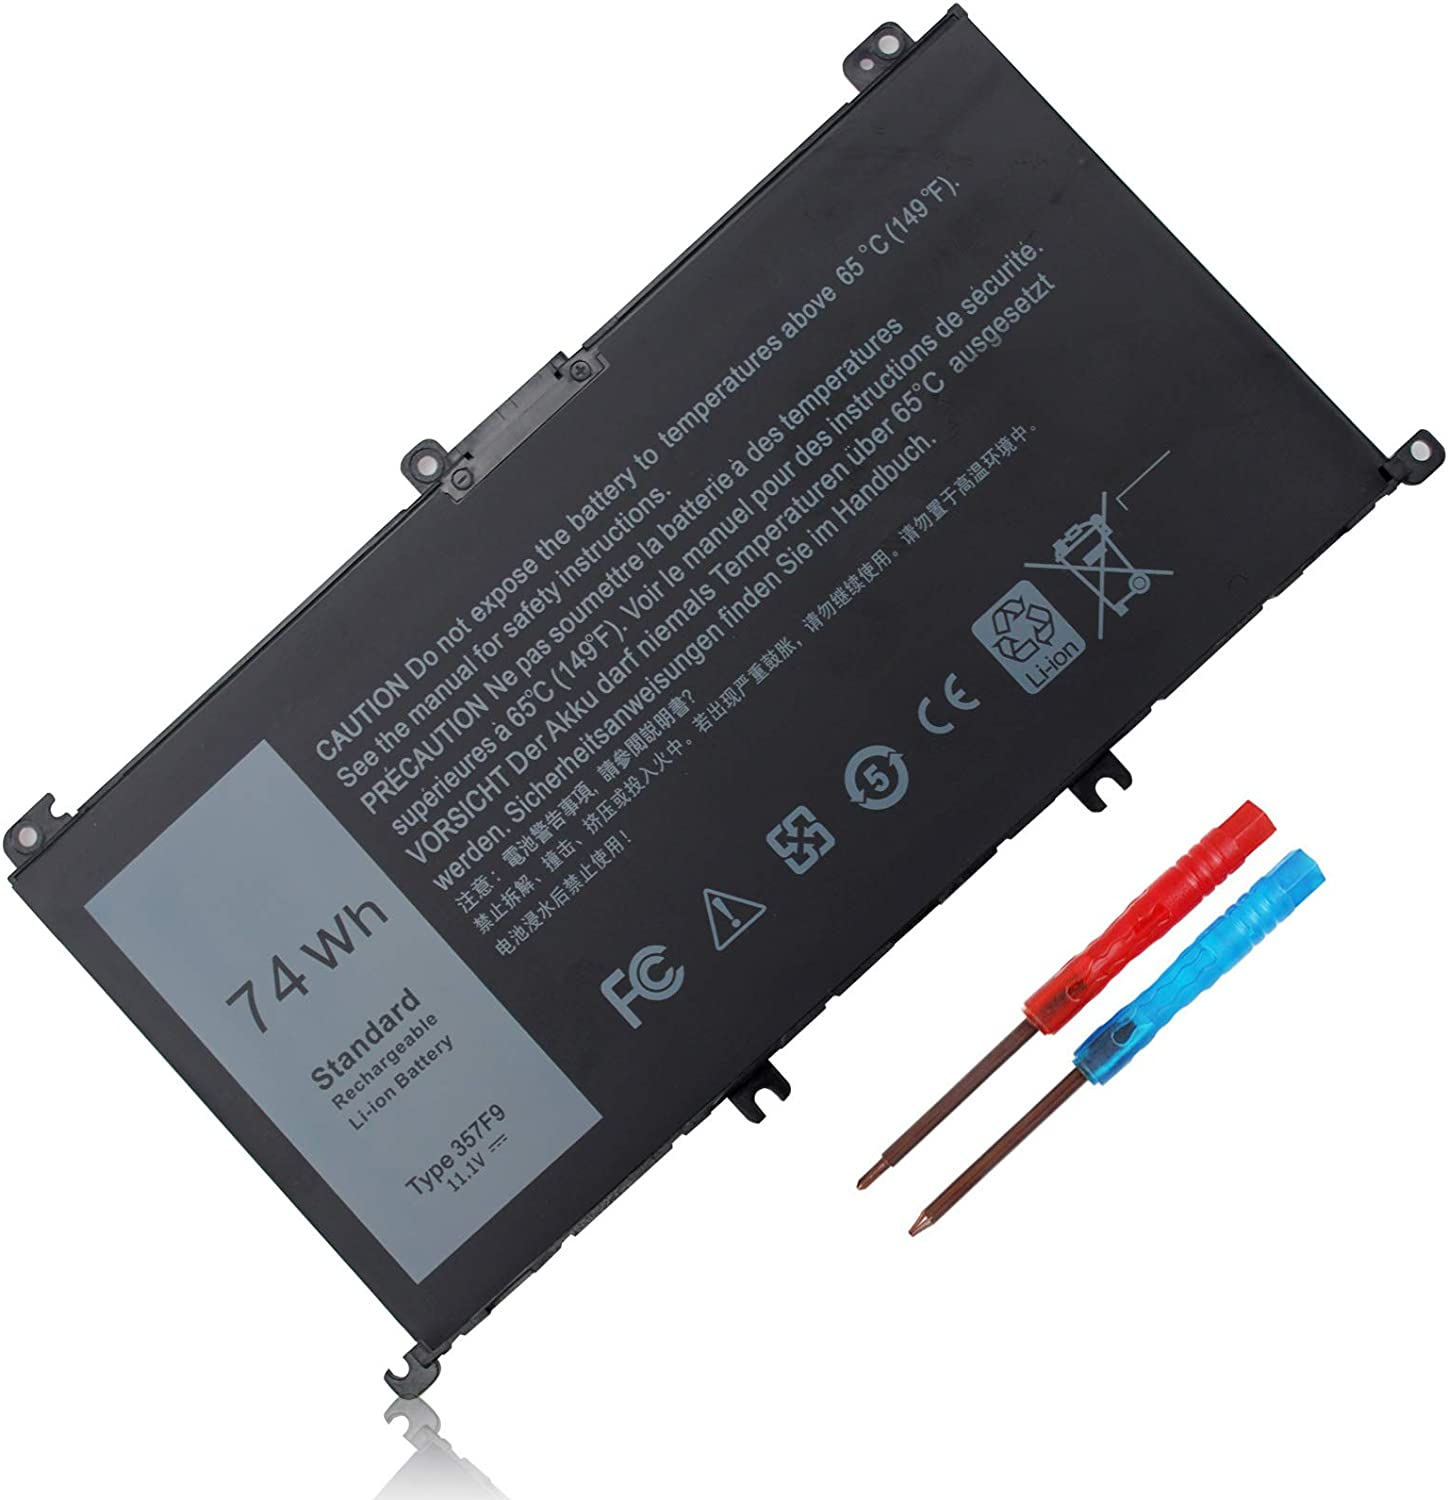 74Wh 357F9 71JF4 Laptop Battery Compatible with Dell Inspiron 15 7000 7566 7559 7557 7567 7759 15 5576 5577 15-7559 INS15PD-1548B 1548R 1748B 1748R 2548R 2548B 2748RSeries 0GFJ6 P57F 071JF4 0357F9